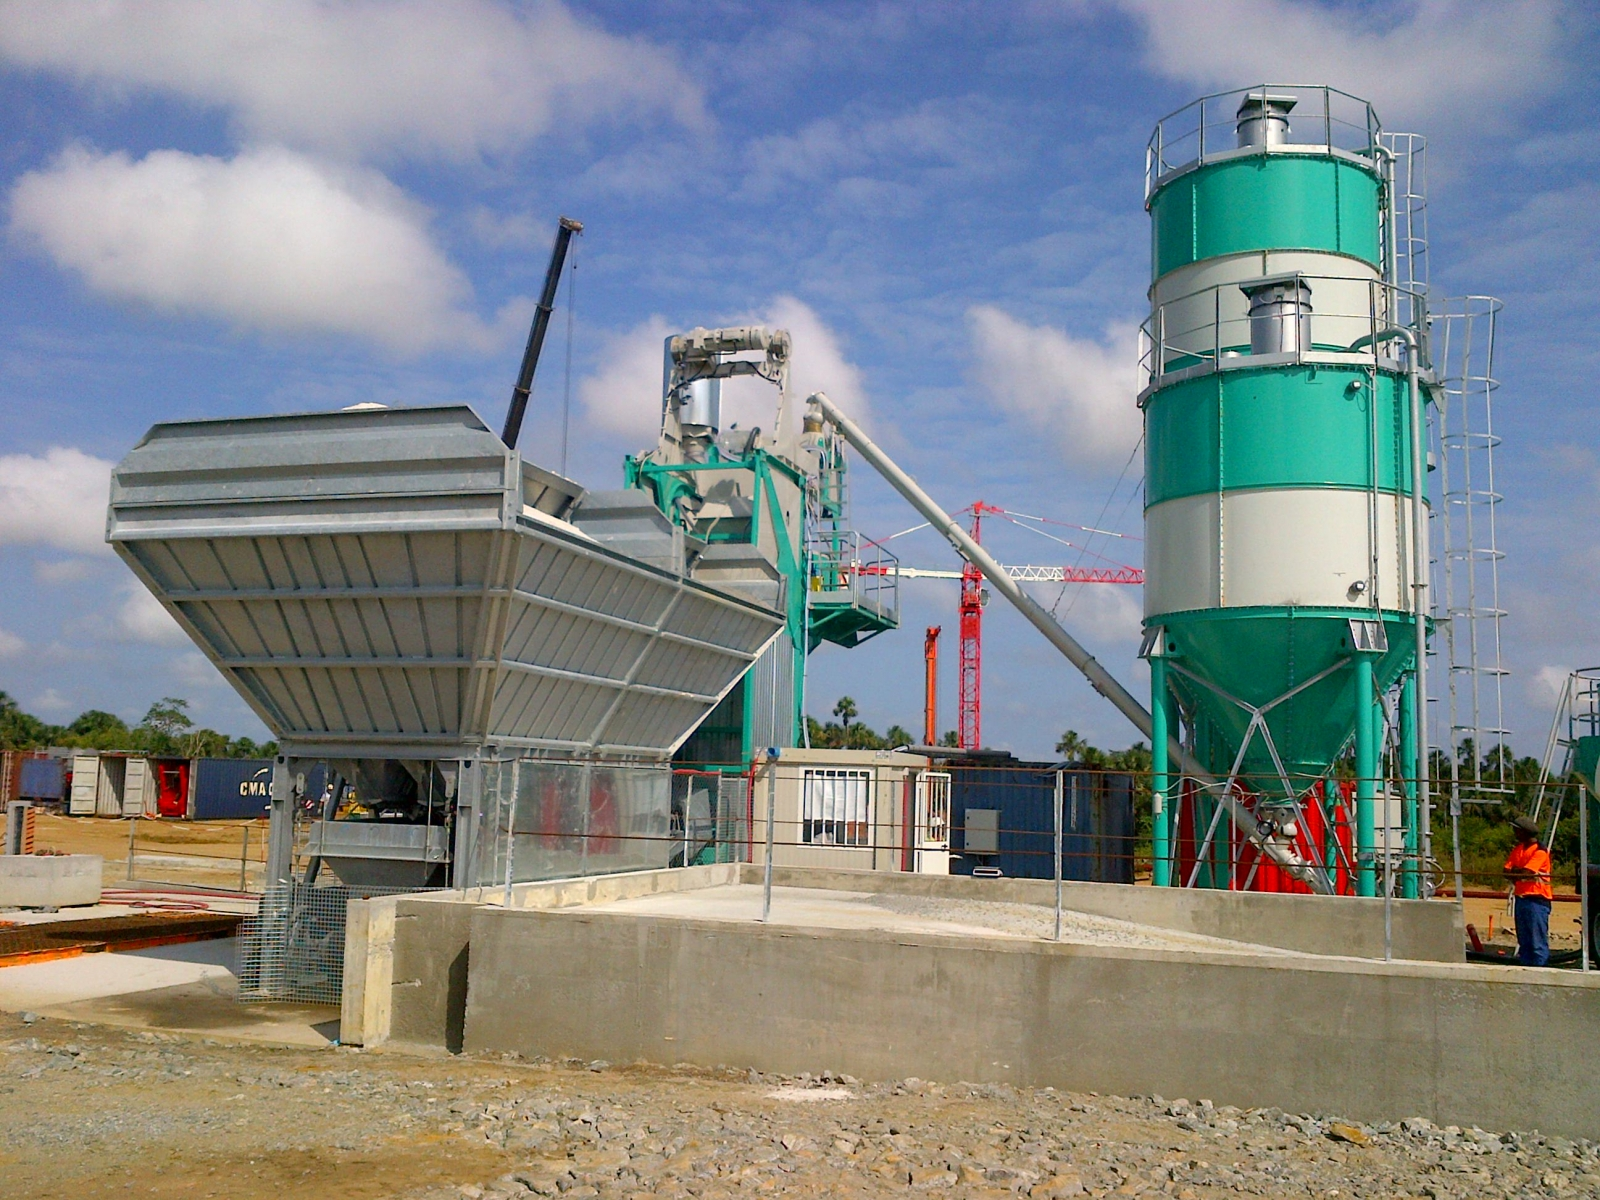 <h1>NEW ORU MULTIS 55B GOLD IN FRENCH GUYANA</h1><p>Great success of the ORU GOLD line in 2015.<br />Just commissioned the new batching plant ORU MULTIS 55B GOLD in French Guiana</p>